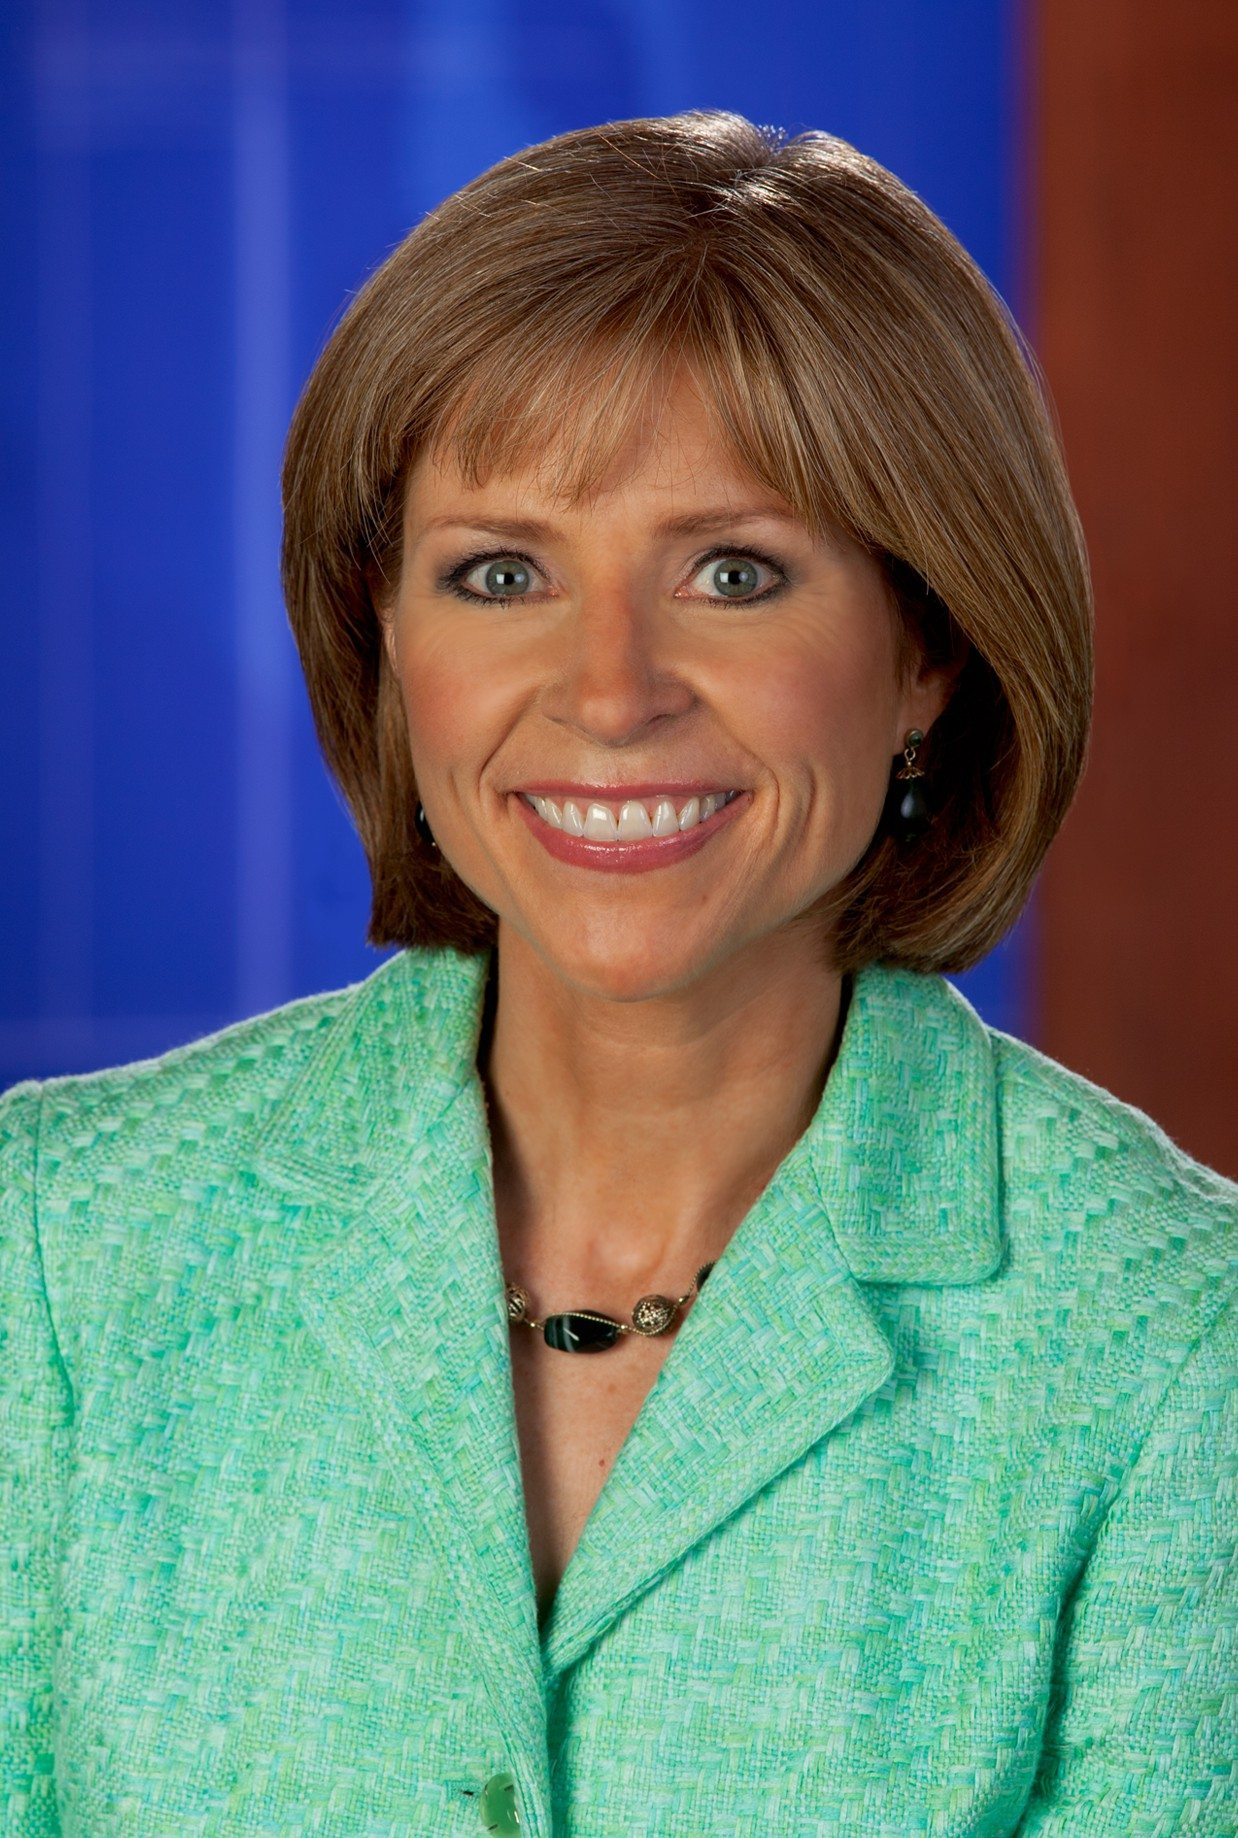 courtesy photoKTVU's Tori Campbell is reportedly leaving the station to relocate closer to her family.